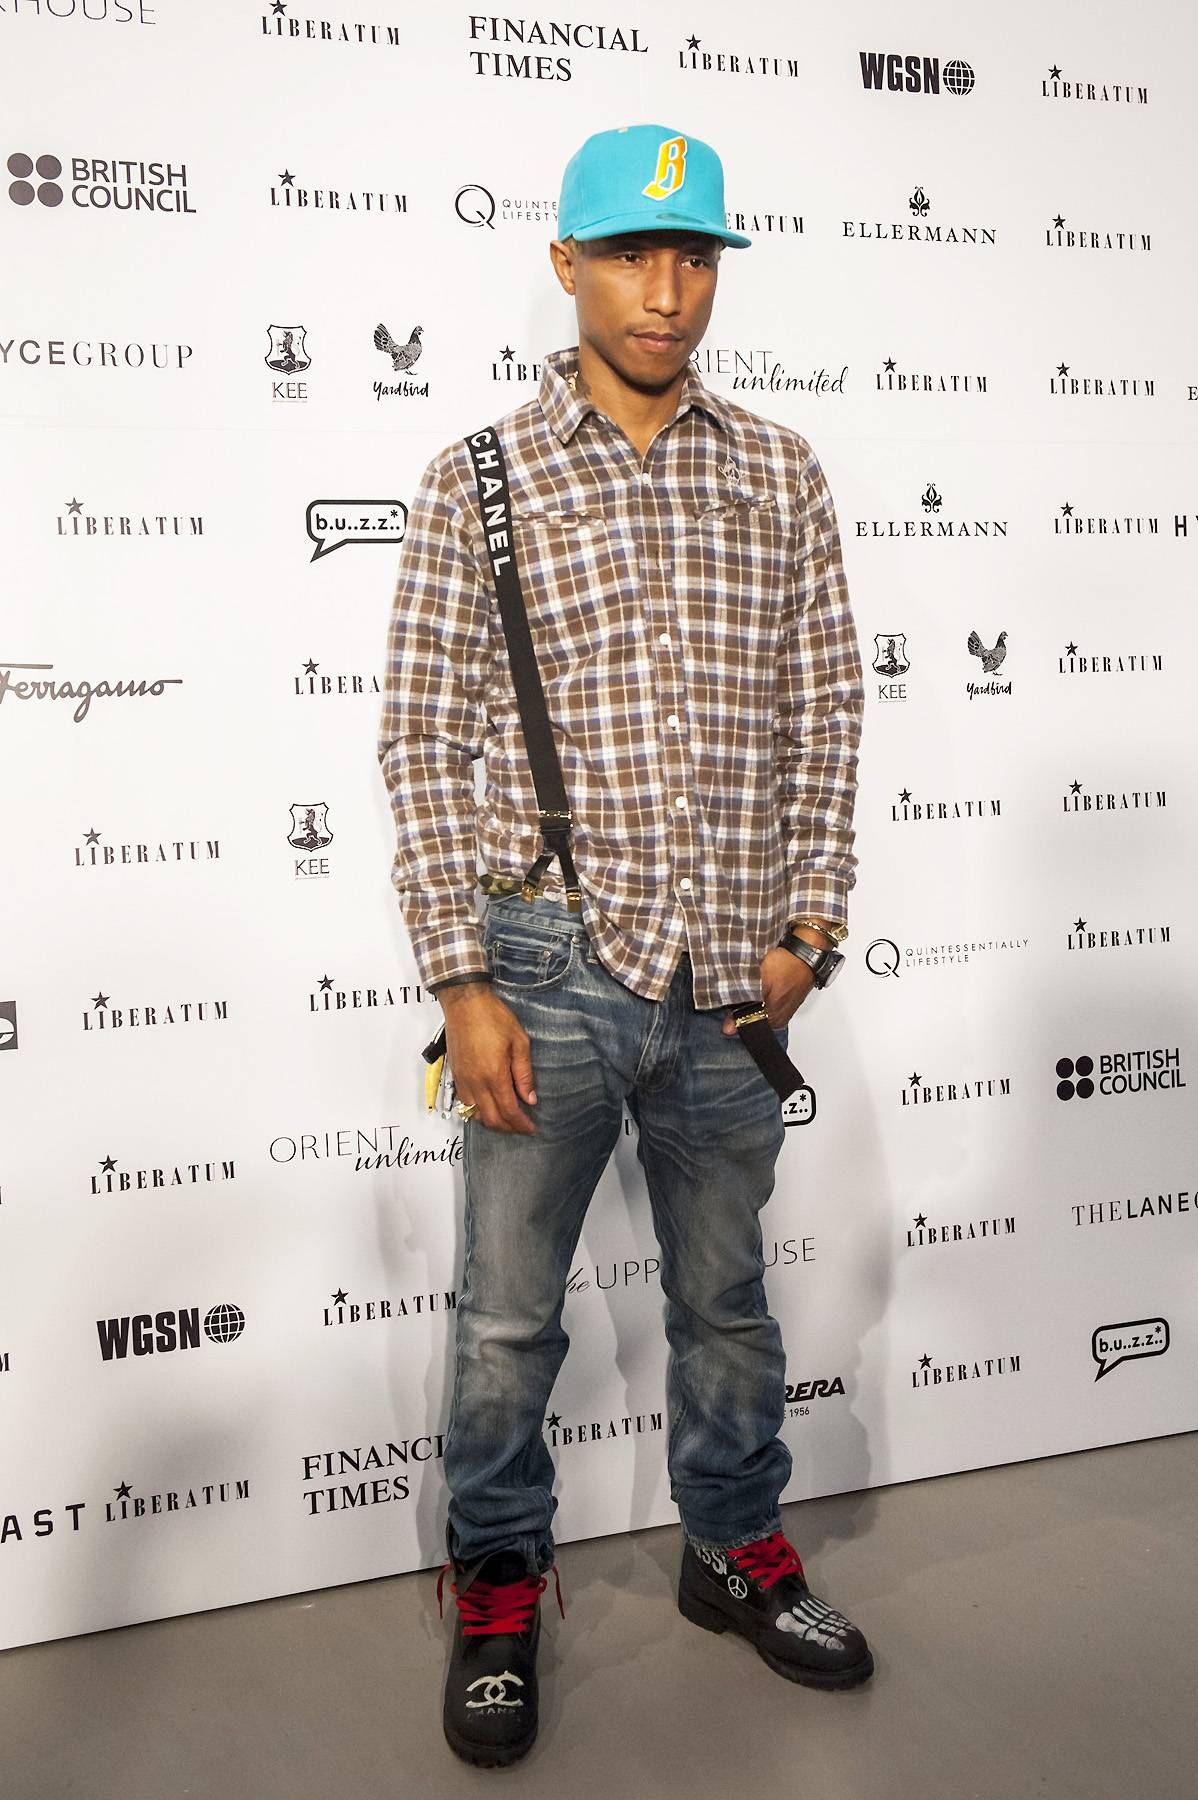 """Pharrell Williams - Between the clothing lines Billionaire Boys Club and Ice Cream, Pharrell is no stranger to fashion. He was one of the first rappers to bring skate culture to hip hop and diversify the typical rap """"look.""""(Photo: Victor Fraile/Getty Images)"""